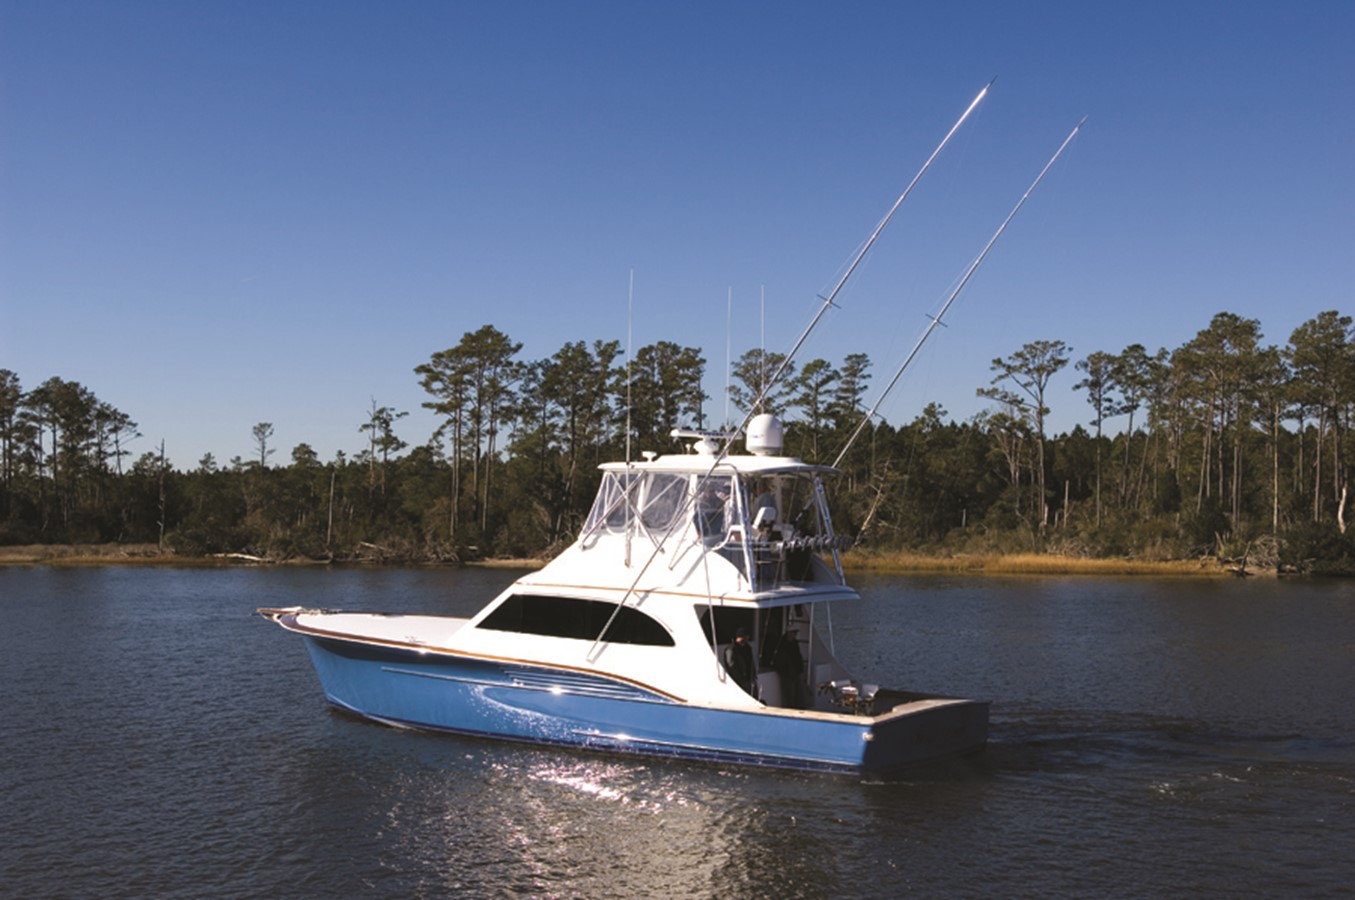 53' Jarrett Bay - Port - 53 JARRETT BAY For Sale